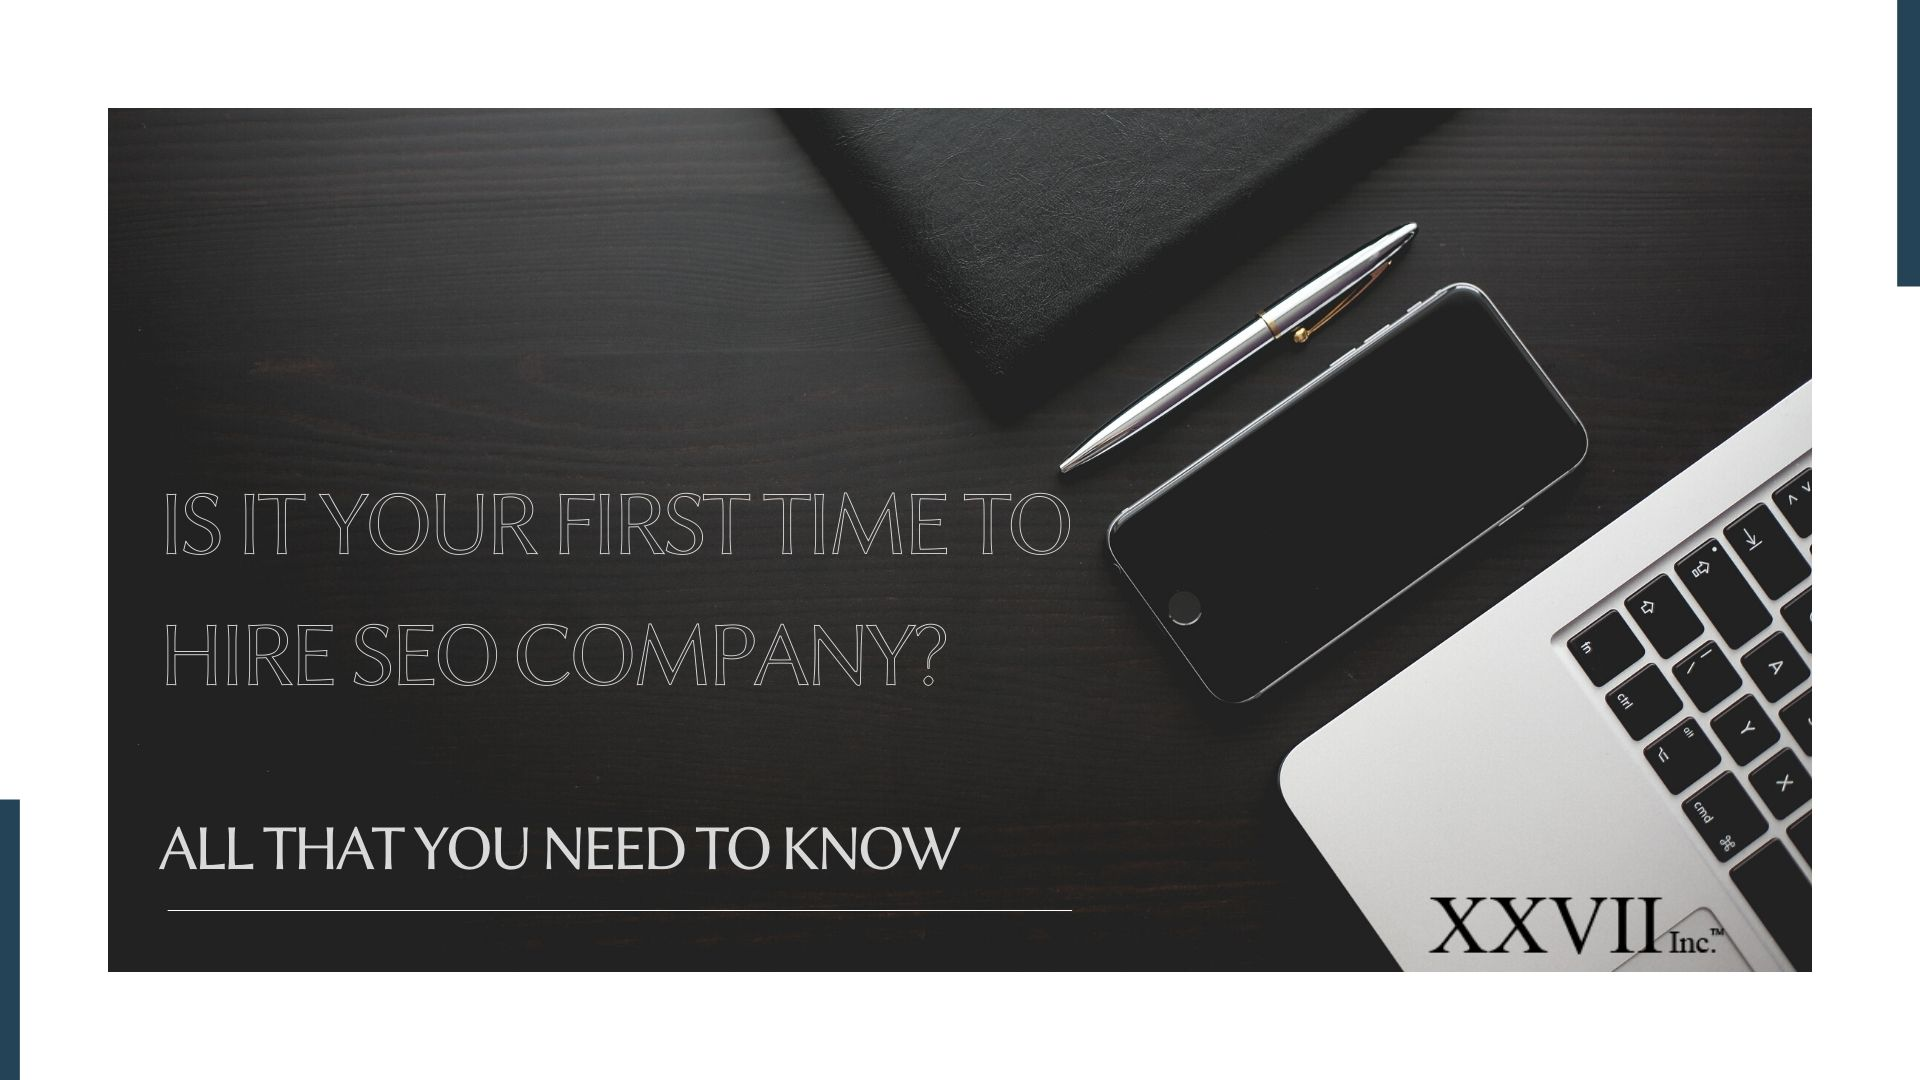 Is It Your First Time To Hire SEO Company? All That You Need To Know